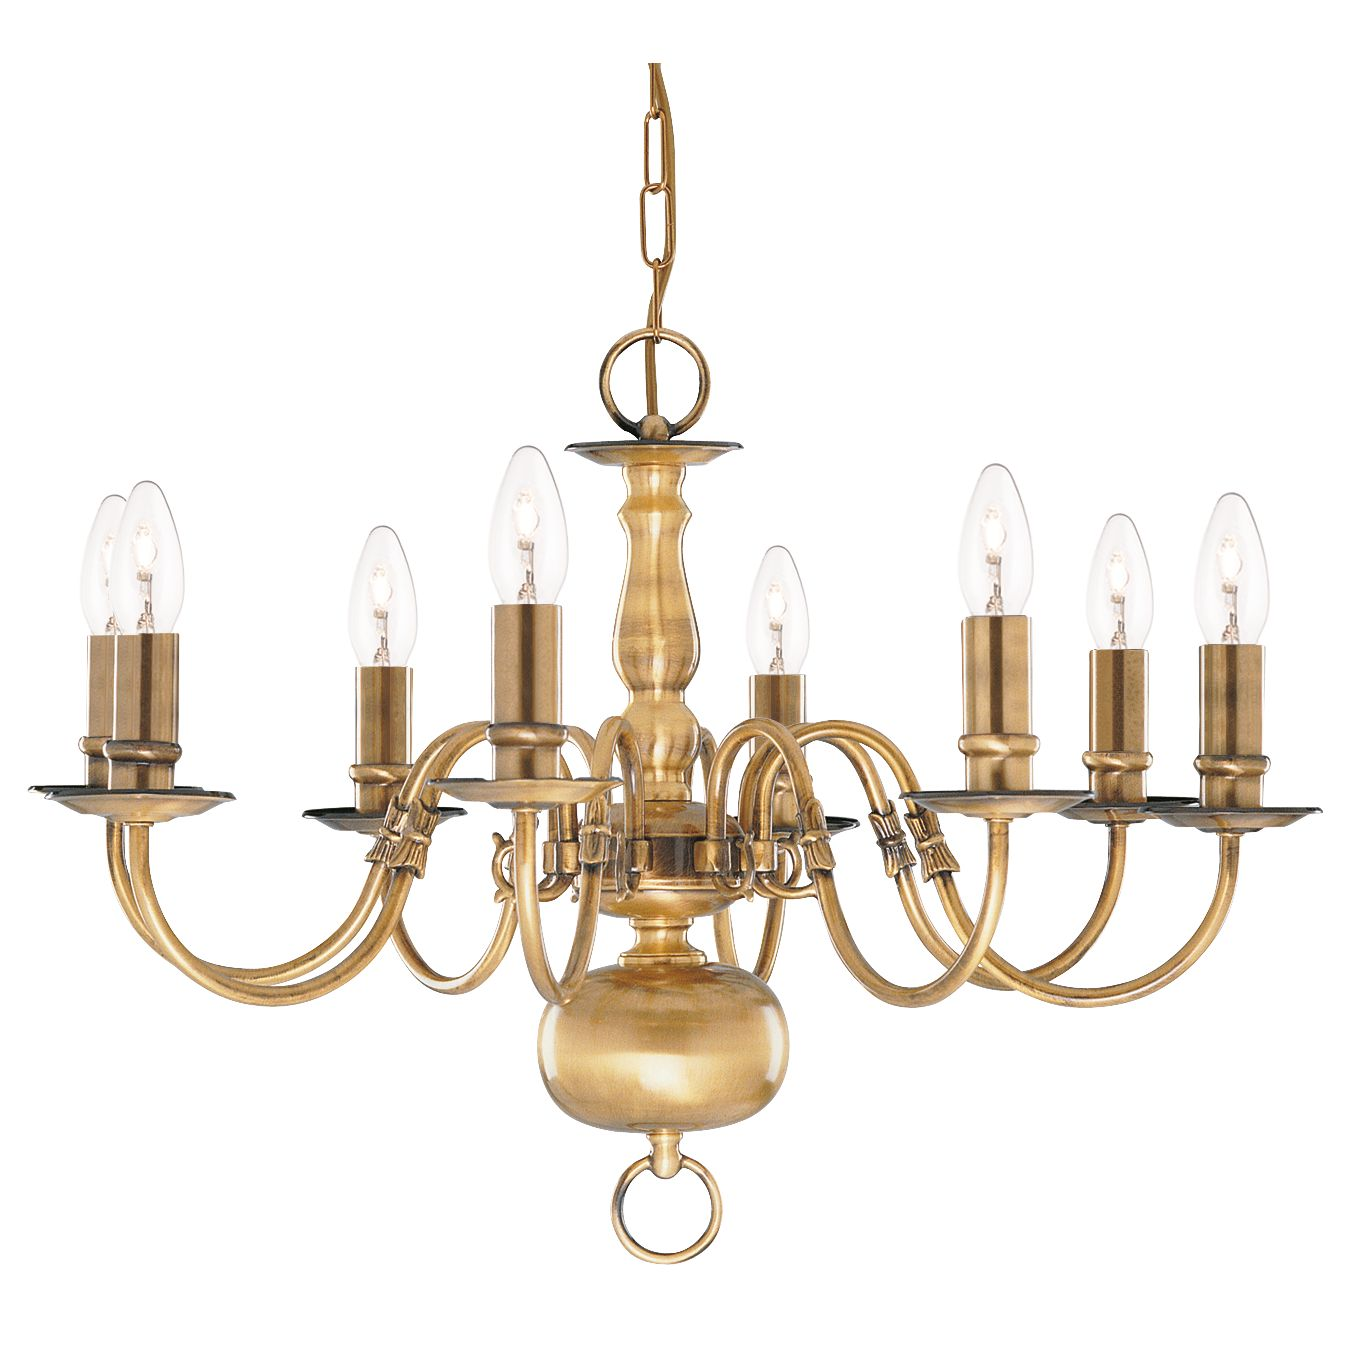 Flemish Solid Antique Brass 8 Light Chandelier With Metal Candle Covers